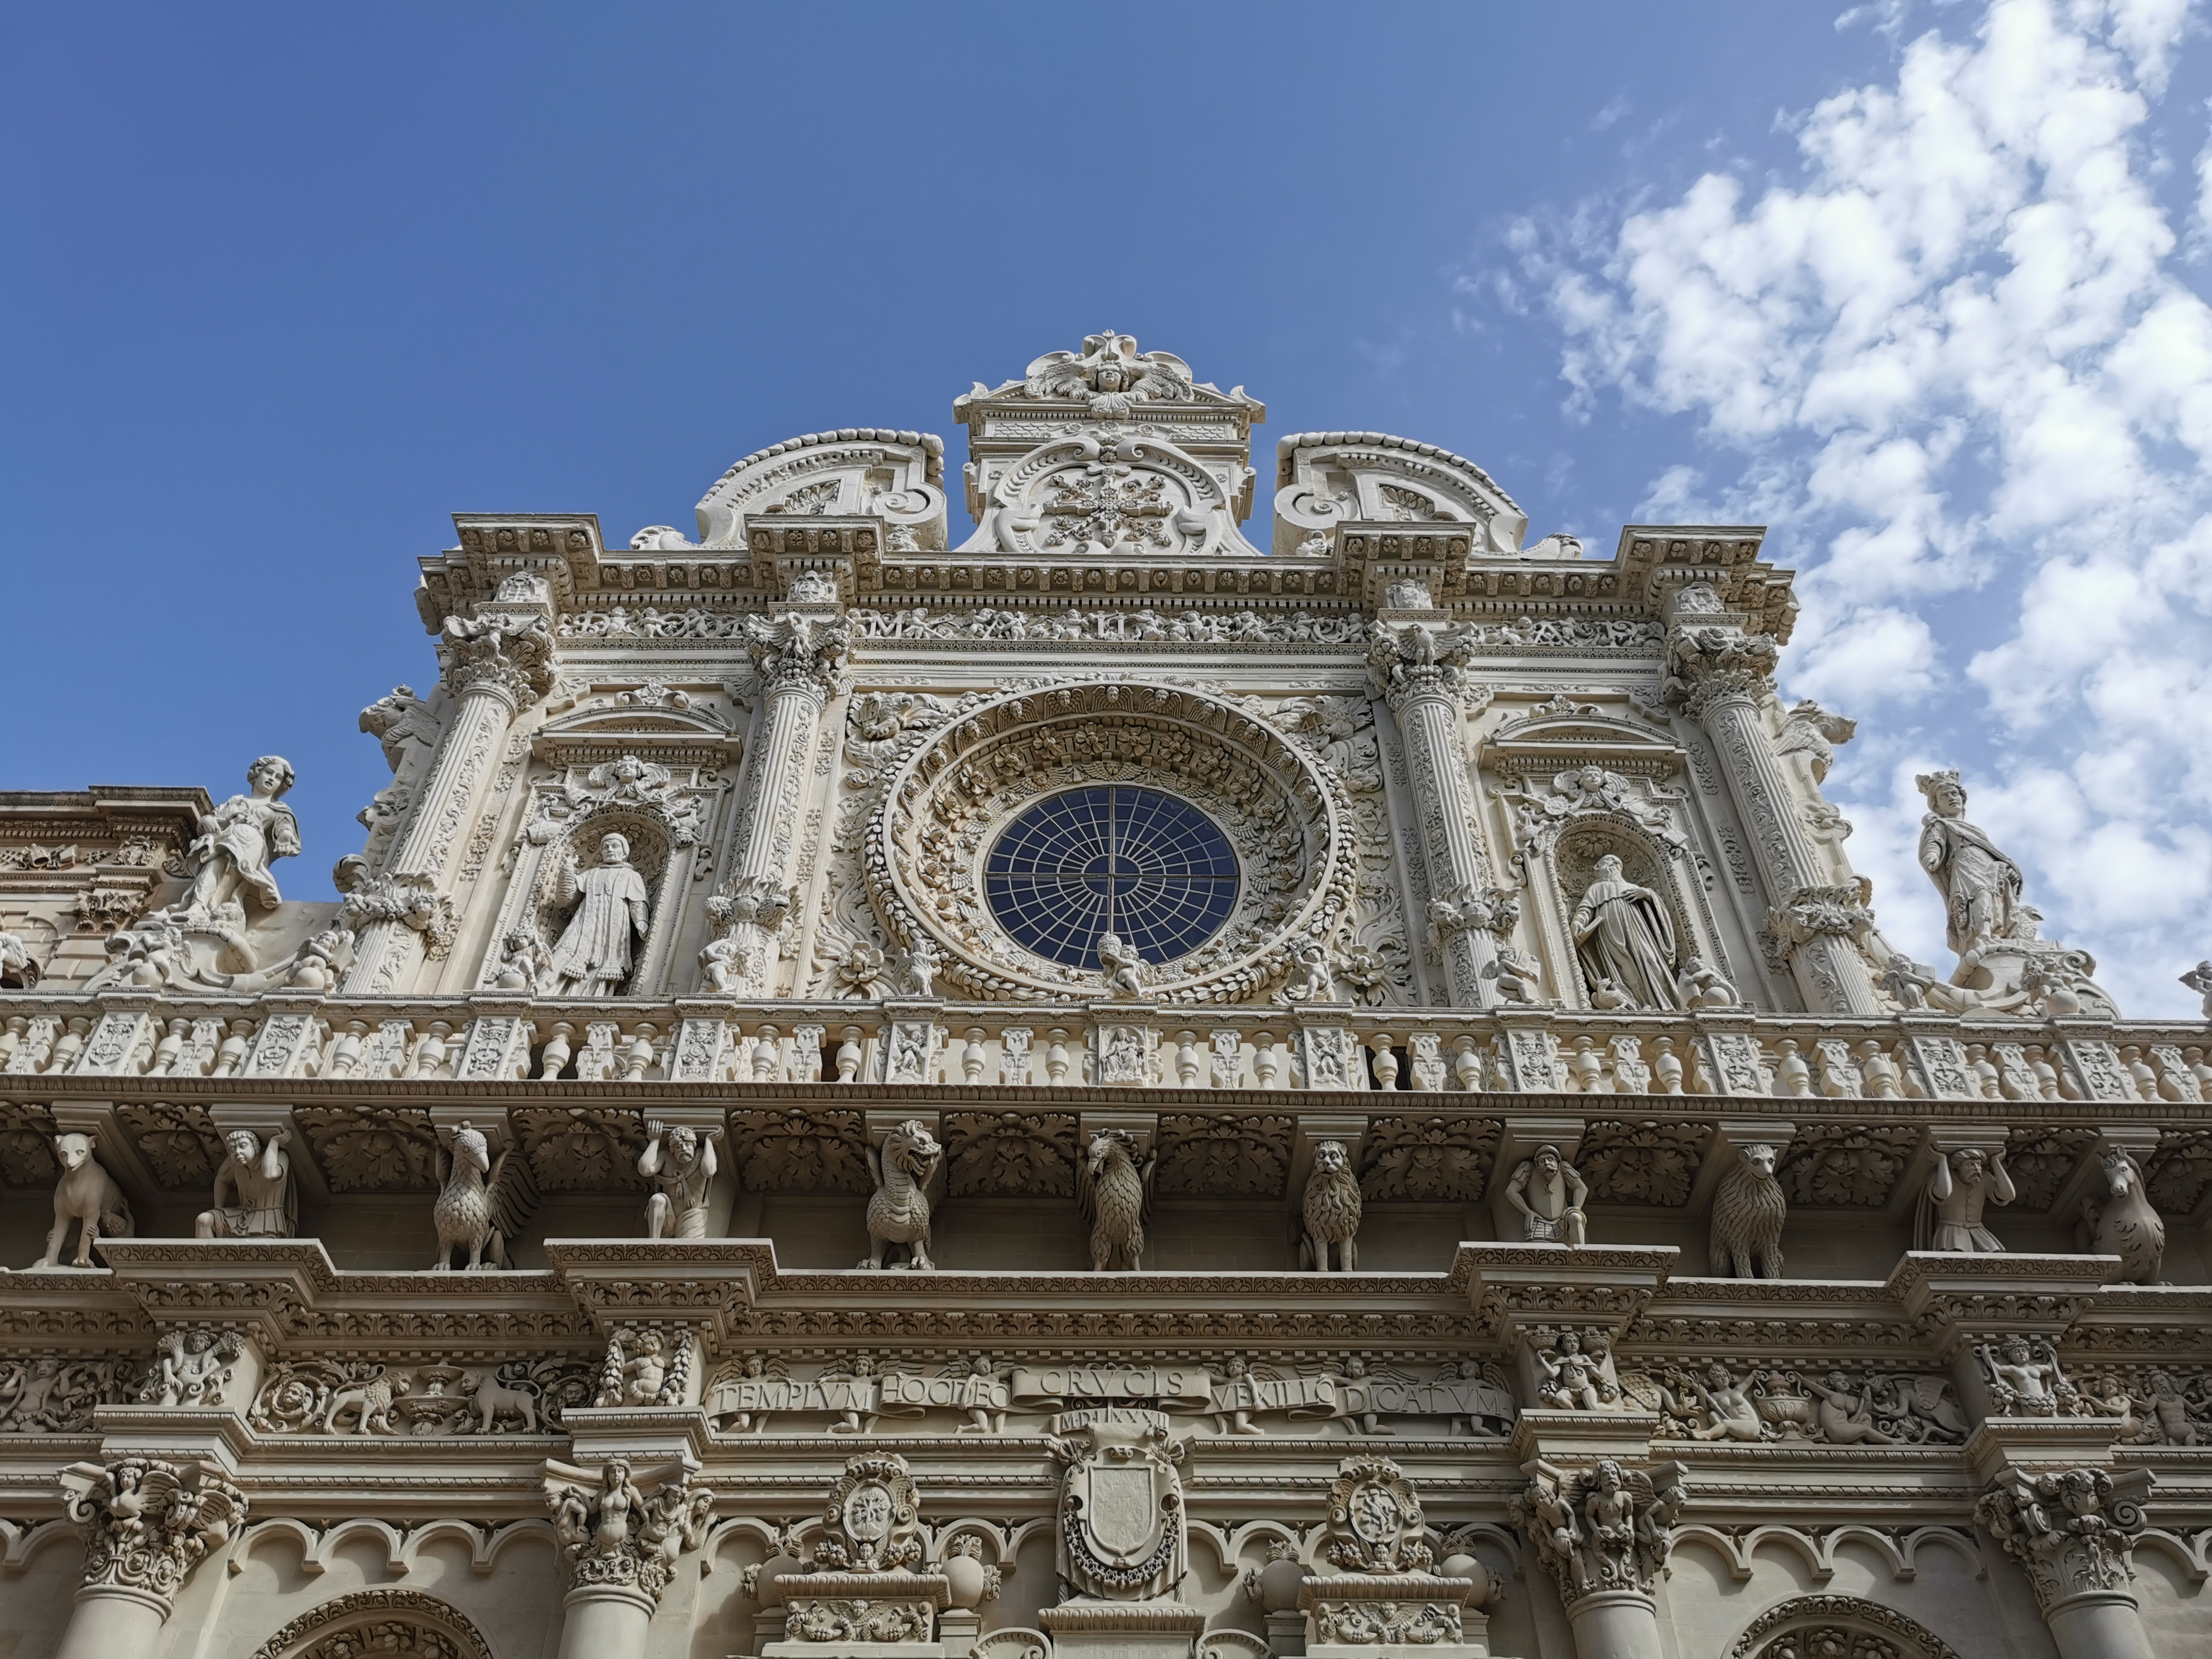 The Church of the Holy Cross in Lecce is a fine example of Baroque architecture